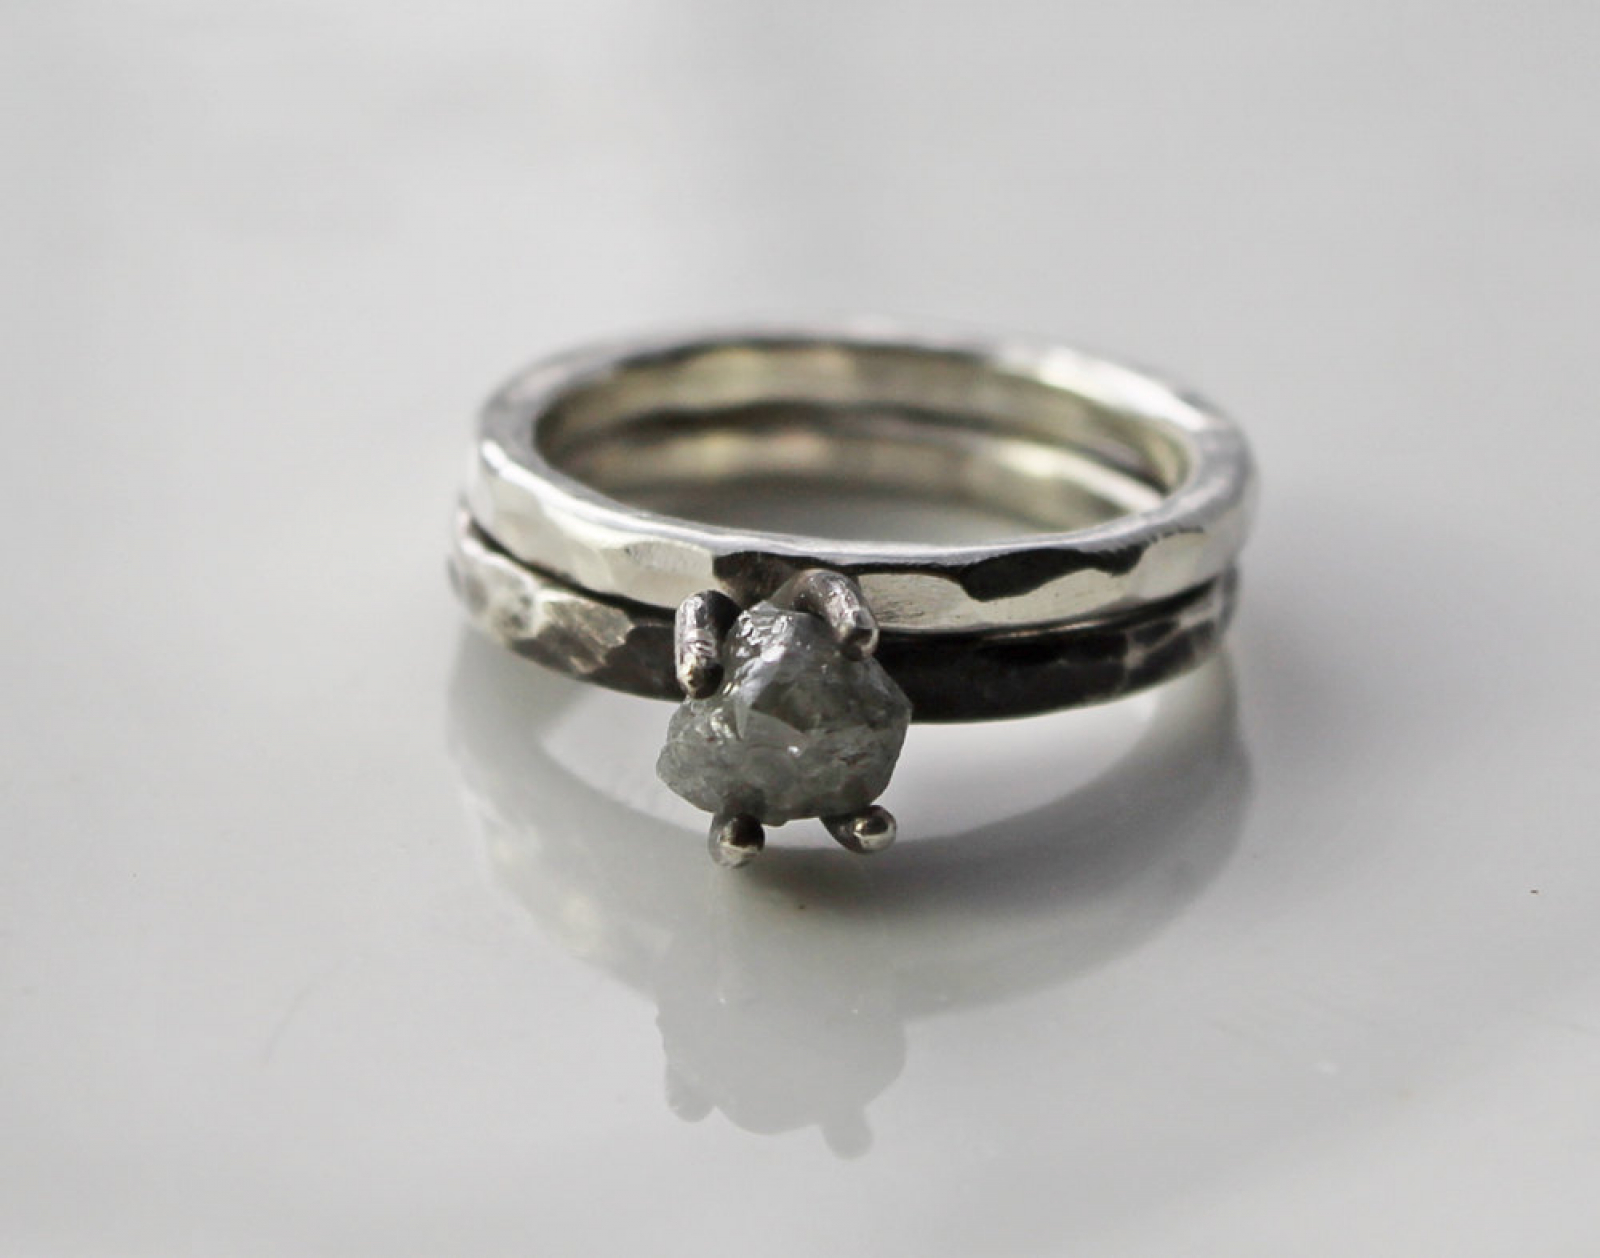 silver engagement wedding rings oxidized feathers oxidation shop